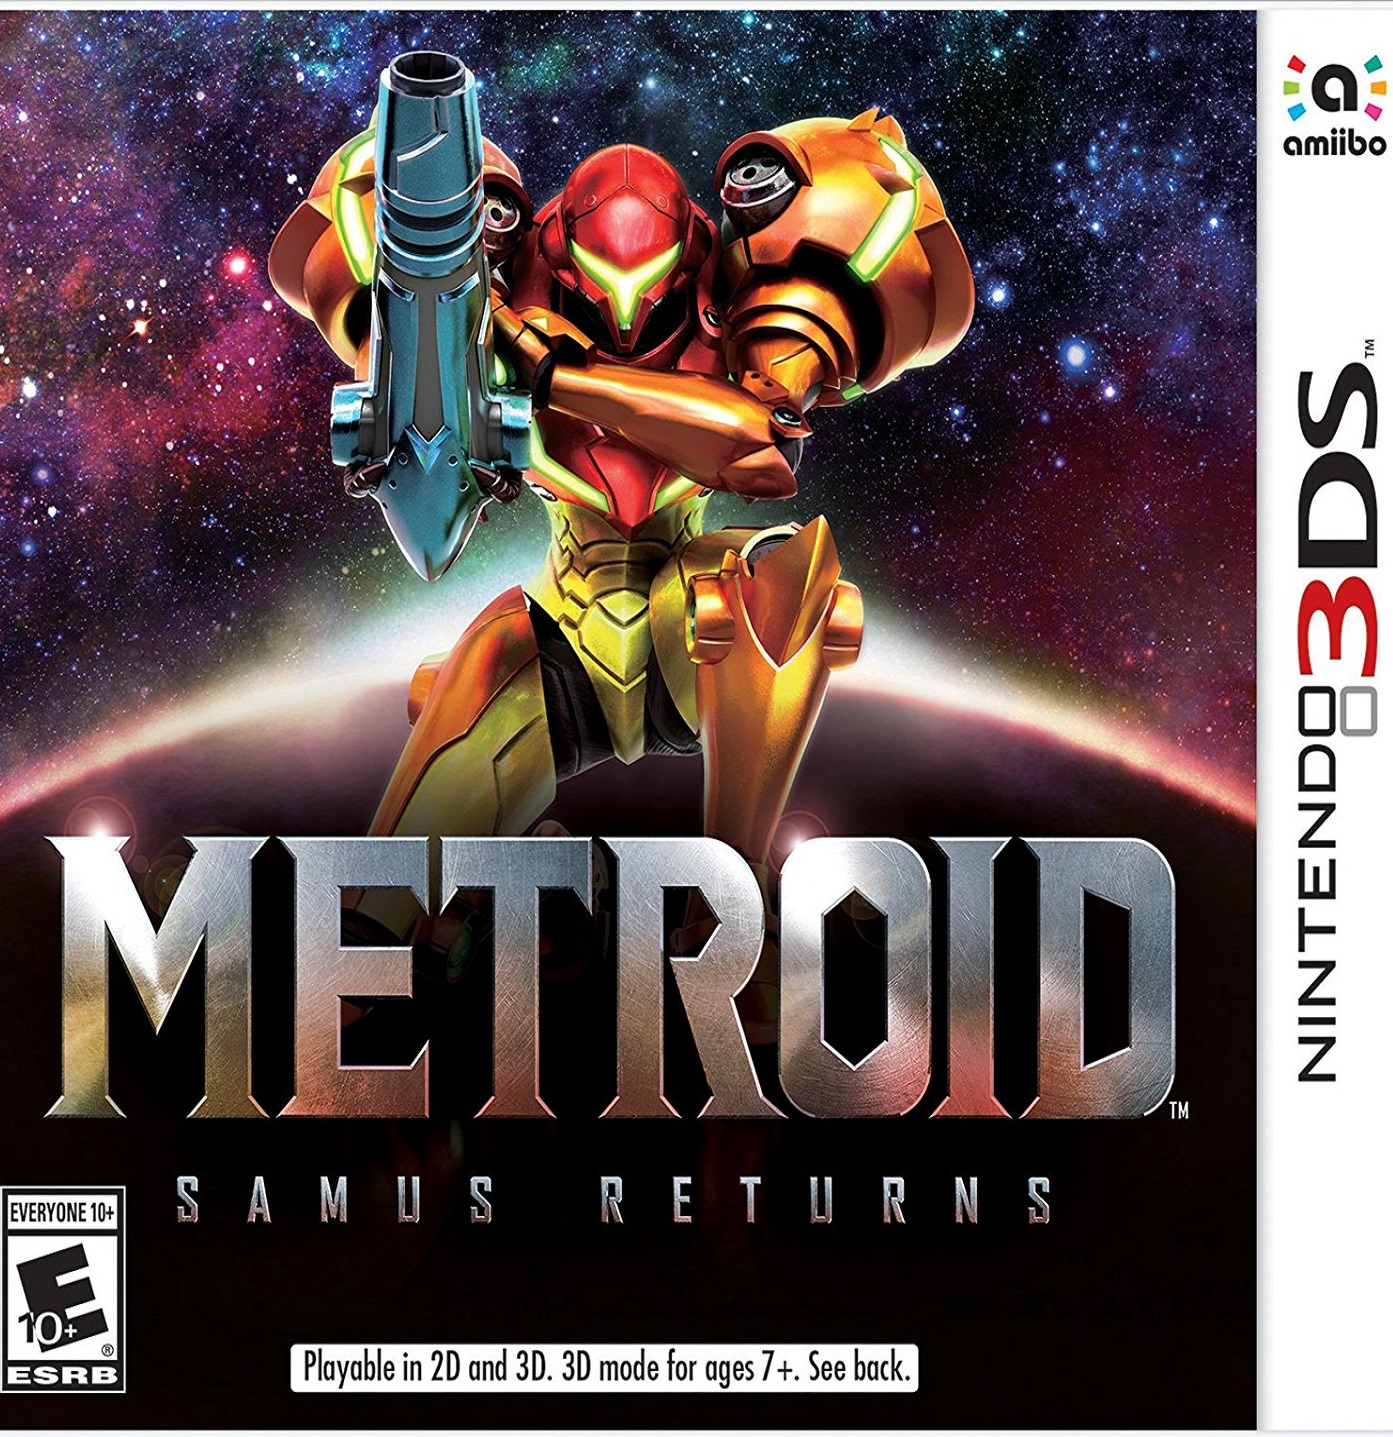 What Are Your Top 5 Favorite Suits From Metroid? (Custom